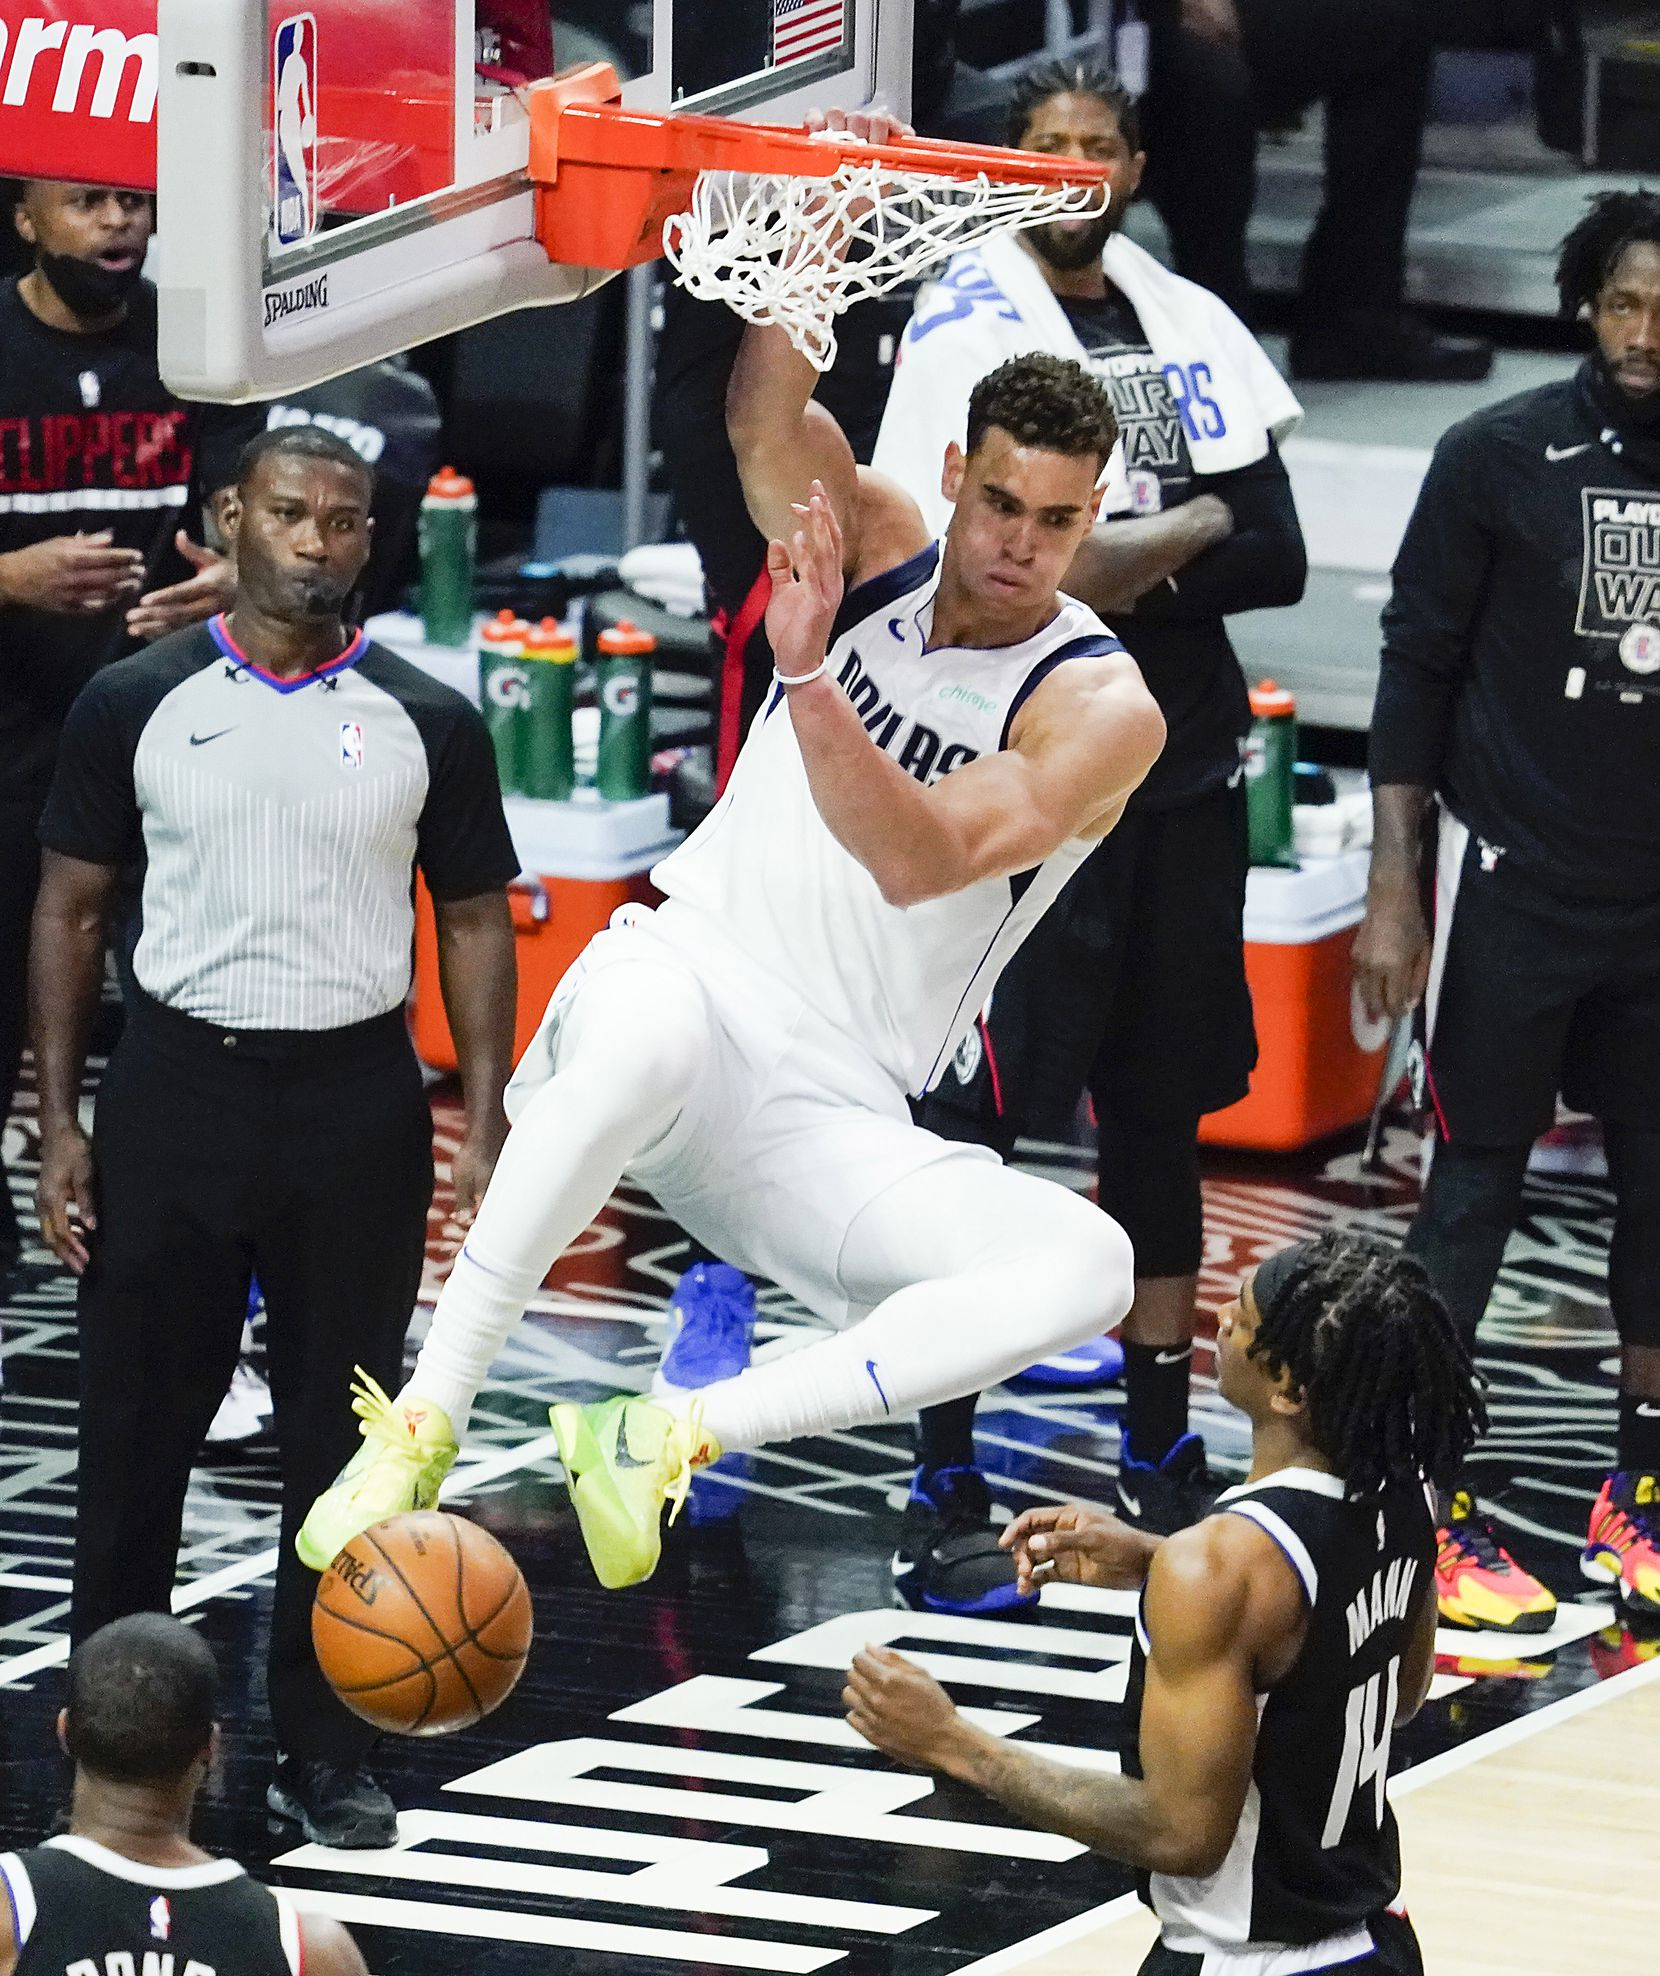 Dallas Mavericks center Dwight Powell (7) dunks the ball past LA Clippers guard Terance Mann (14) during the third quarter of an NBA playoff basketball game at the Staples Center on Wednesday, June 2, 2021, in Los Angeles.  (Smiley N. Pool/The Dallas Morning News)